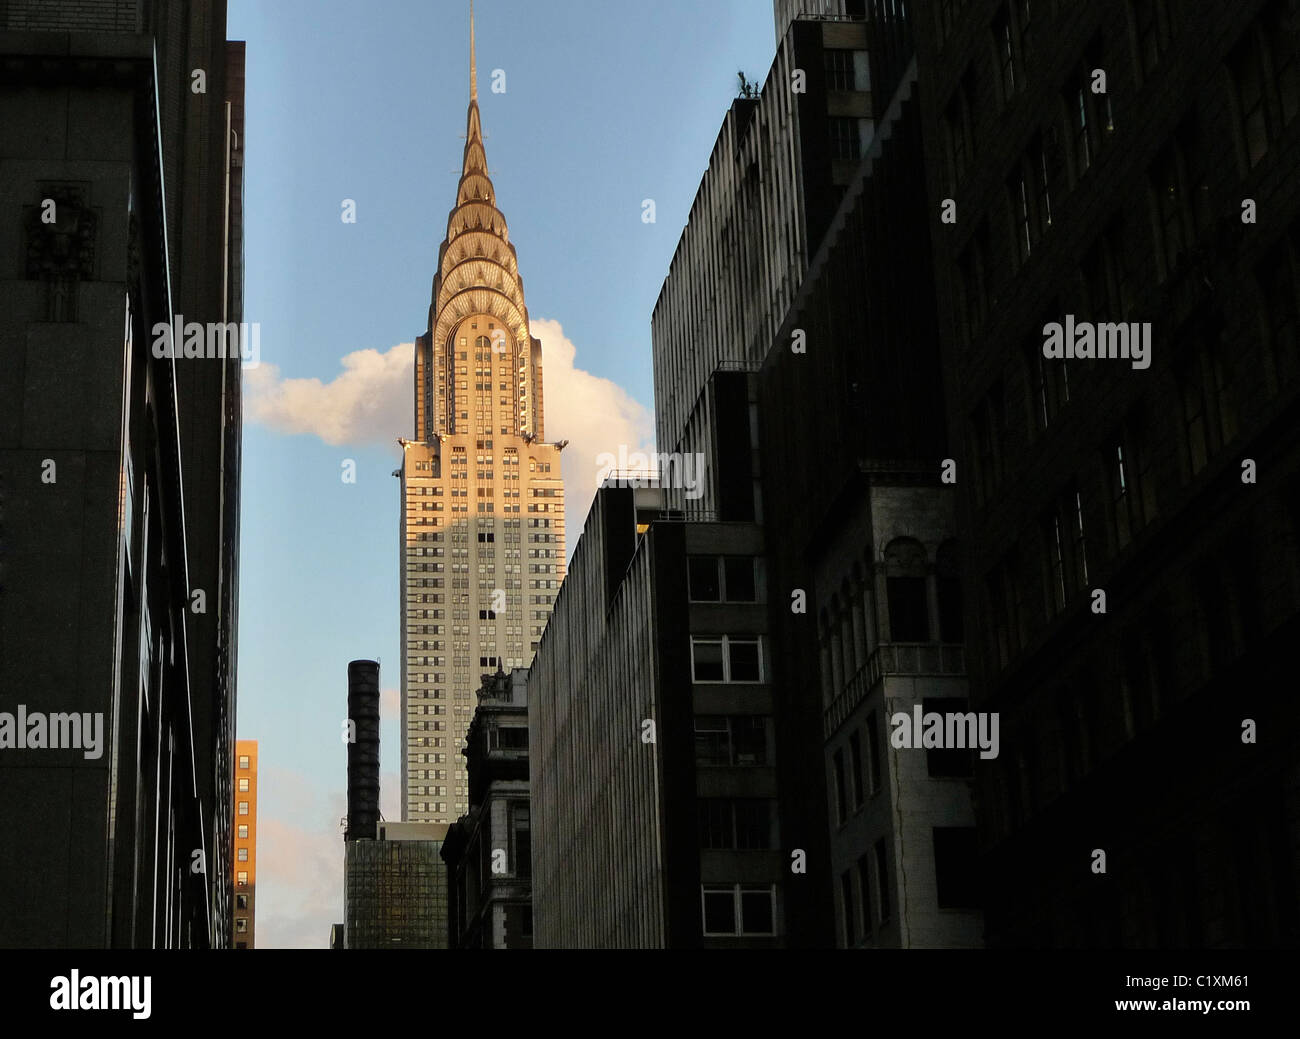 American Cities, Chrysler Building, New York City USA. - Stock Image